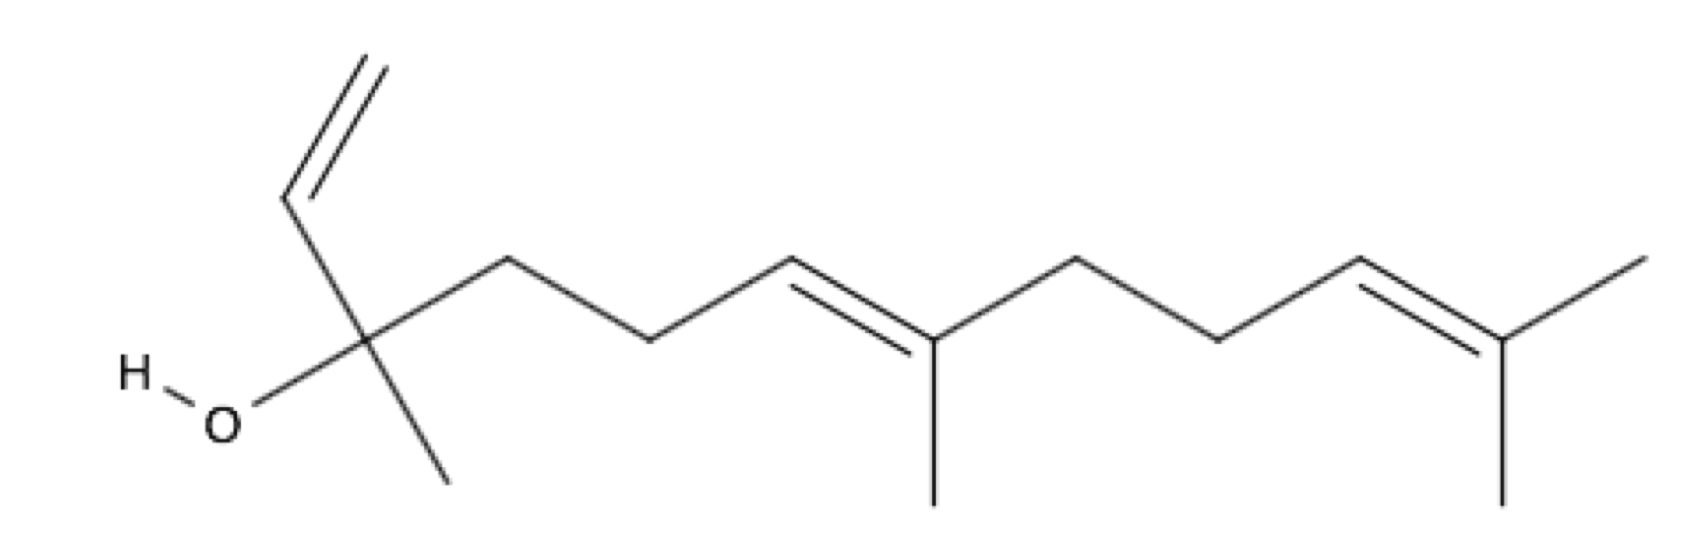 trans-Nerolidol chemical structure